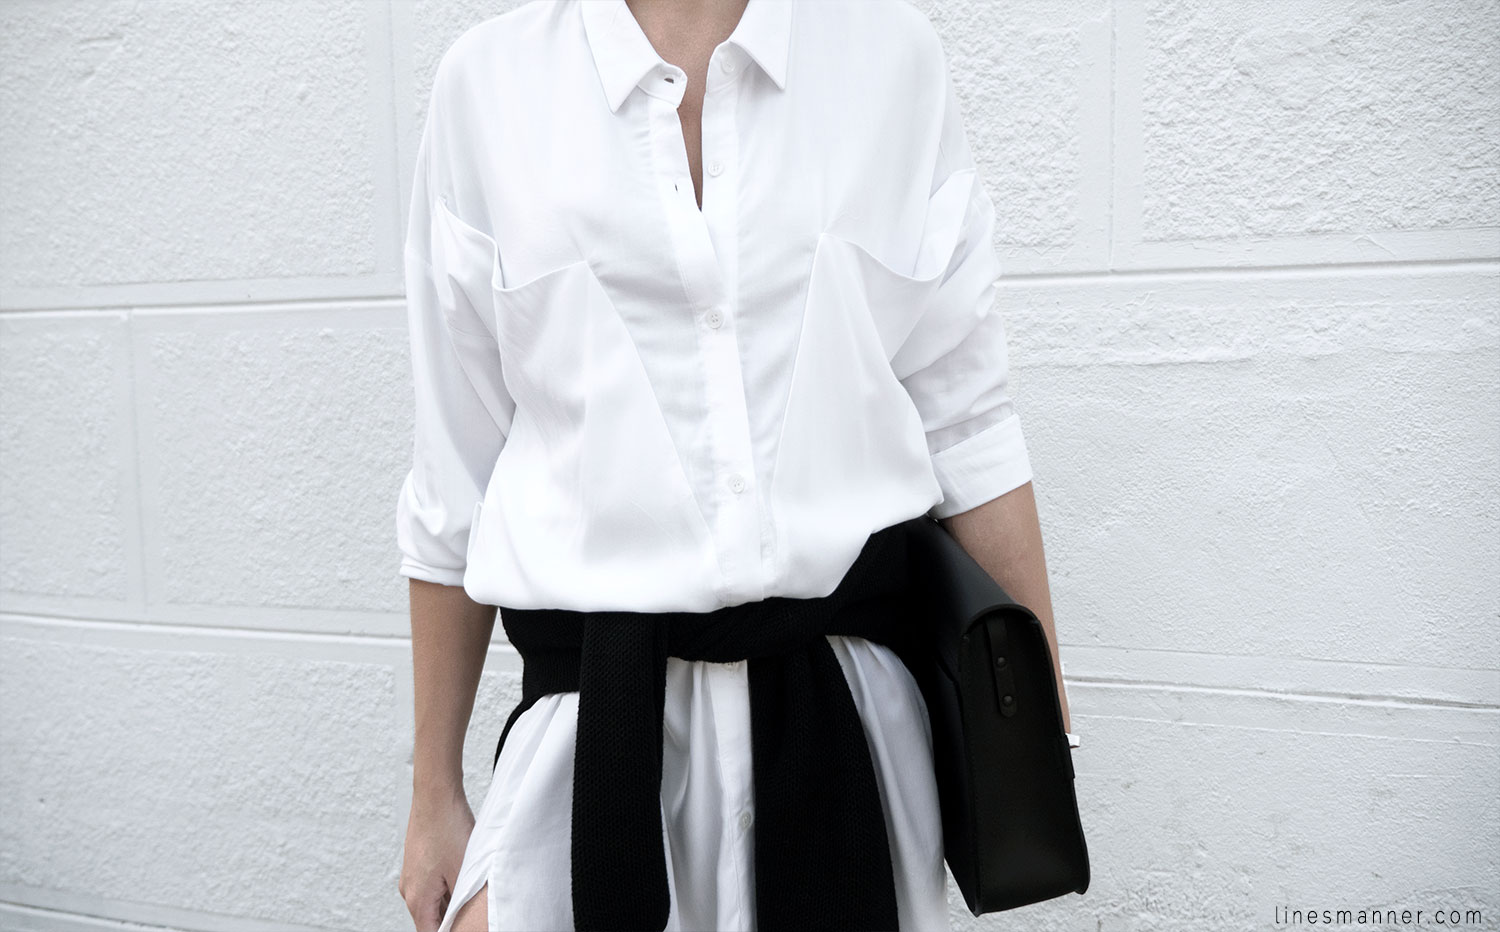 Lines-Manner-Whiteout-Fashion-Minimal-Clean-Fresh-Brigthly-All_White-Monochrome-Immaculate-Trend-Style-Sleek-Slouchy-Details-White_Shirt-Transeasonal-Dressing-Outfit-10